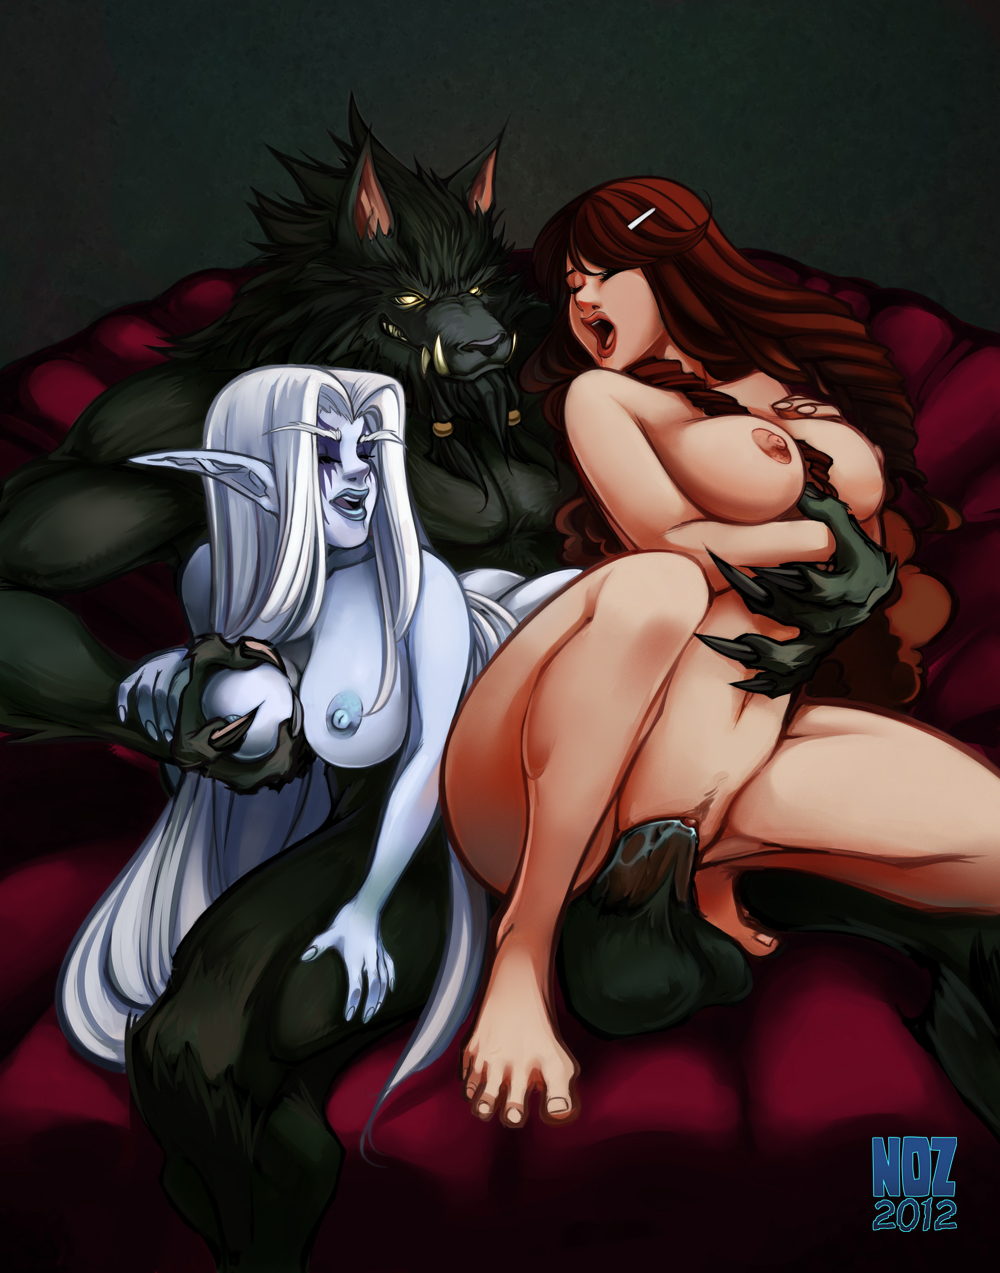 Opinion, World of warcraft female worgen porn thanks